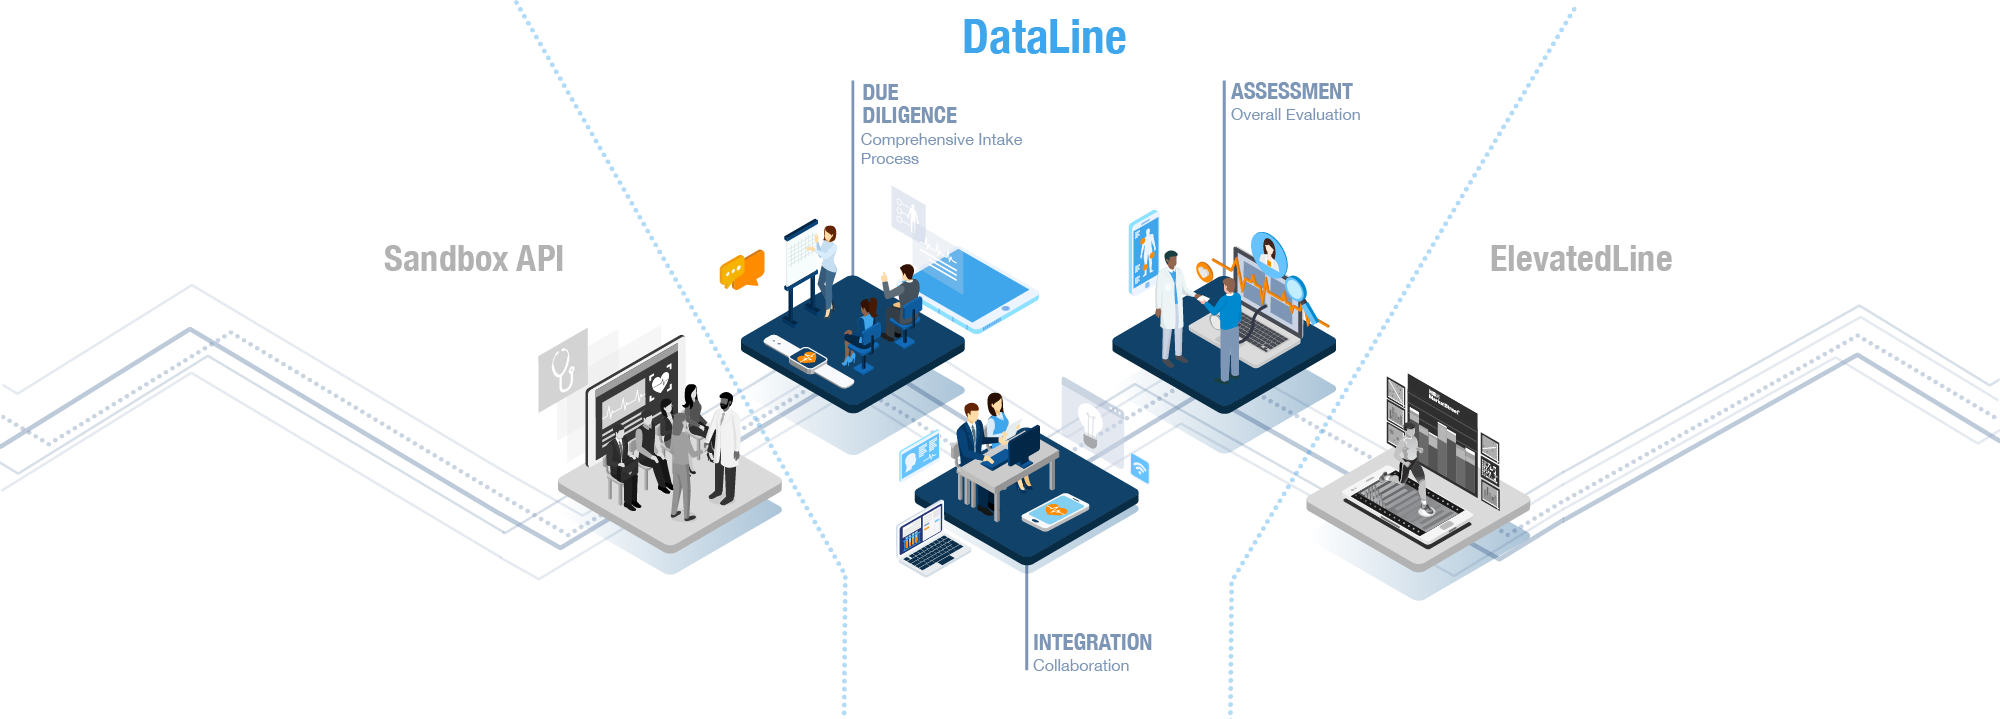 Data Line Illustration